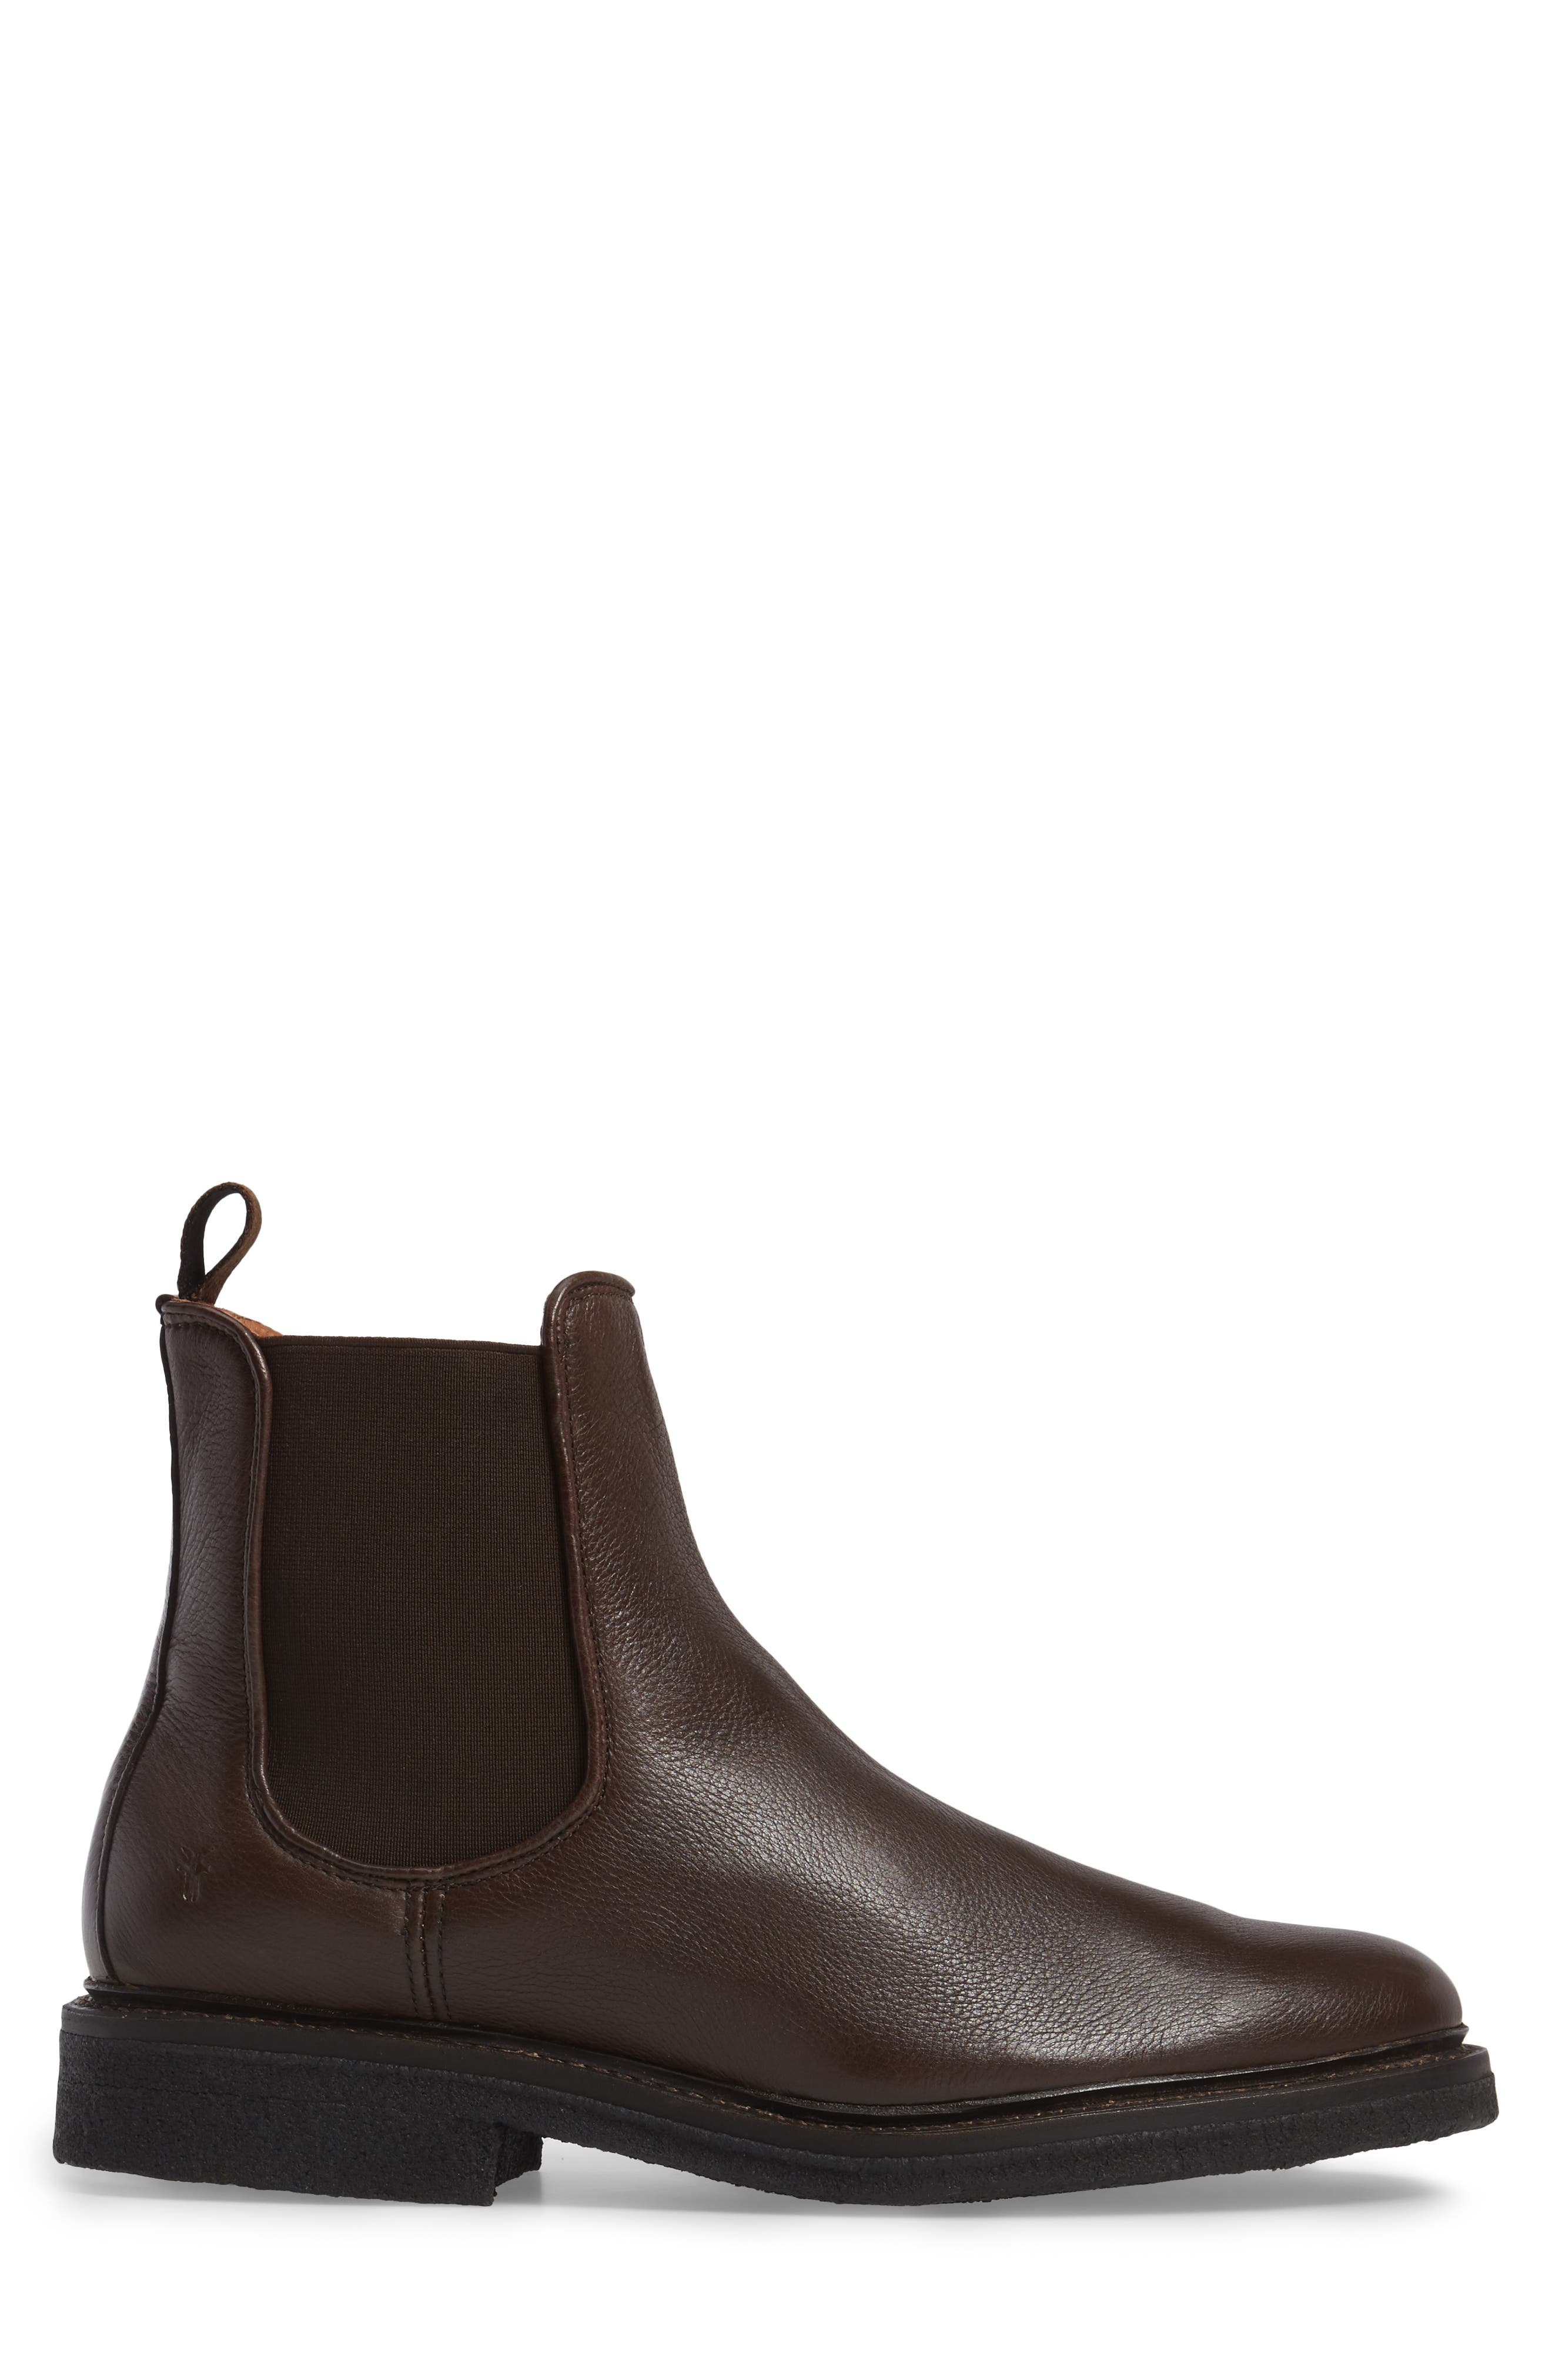 Country Chelsea Boot,                             Alternate thumbnail 3, color,                             200